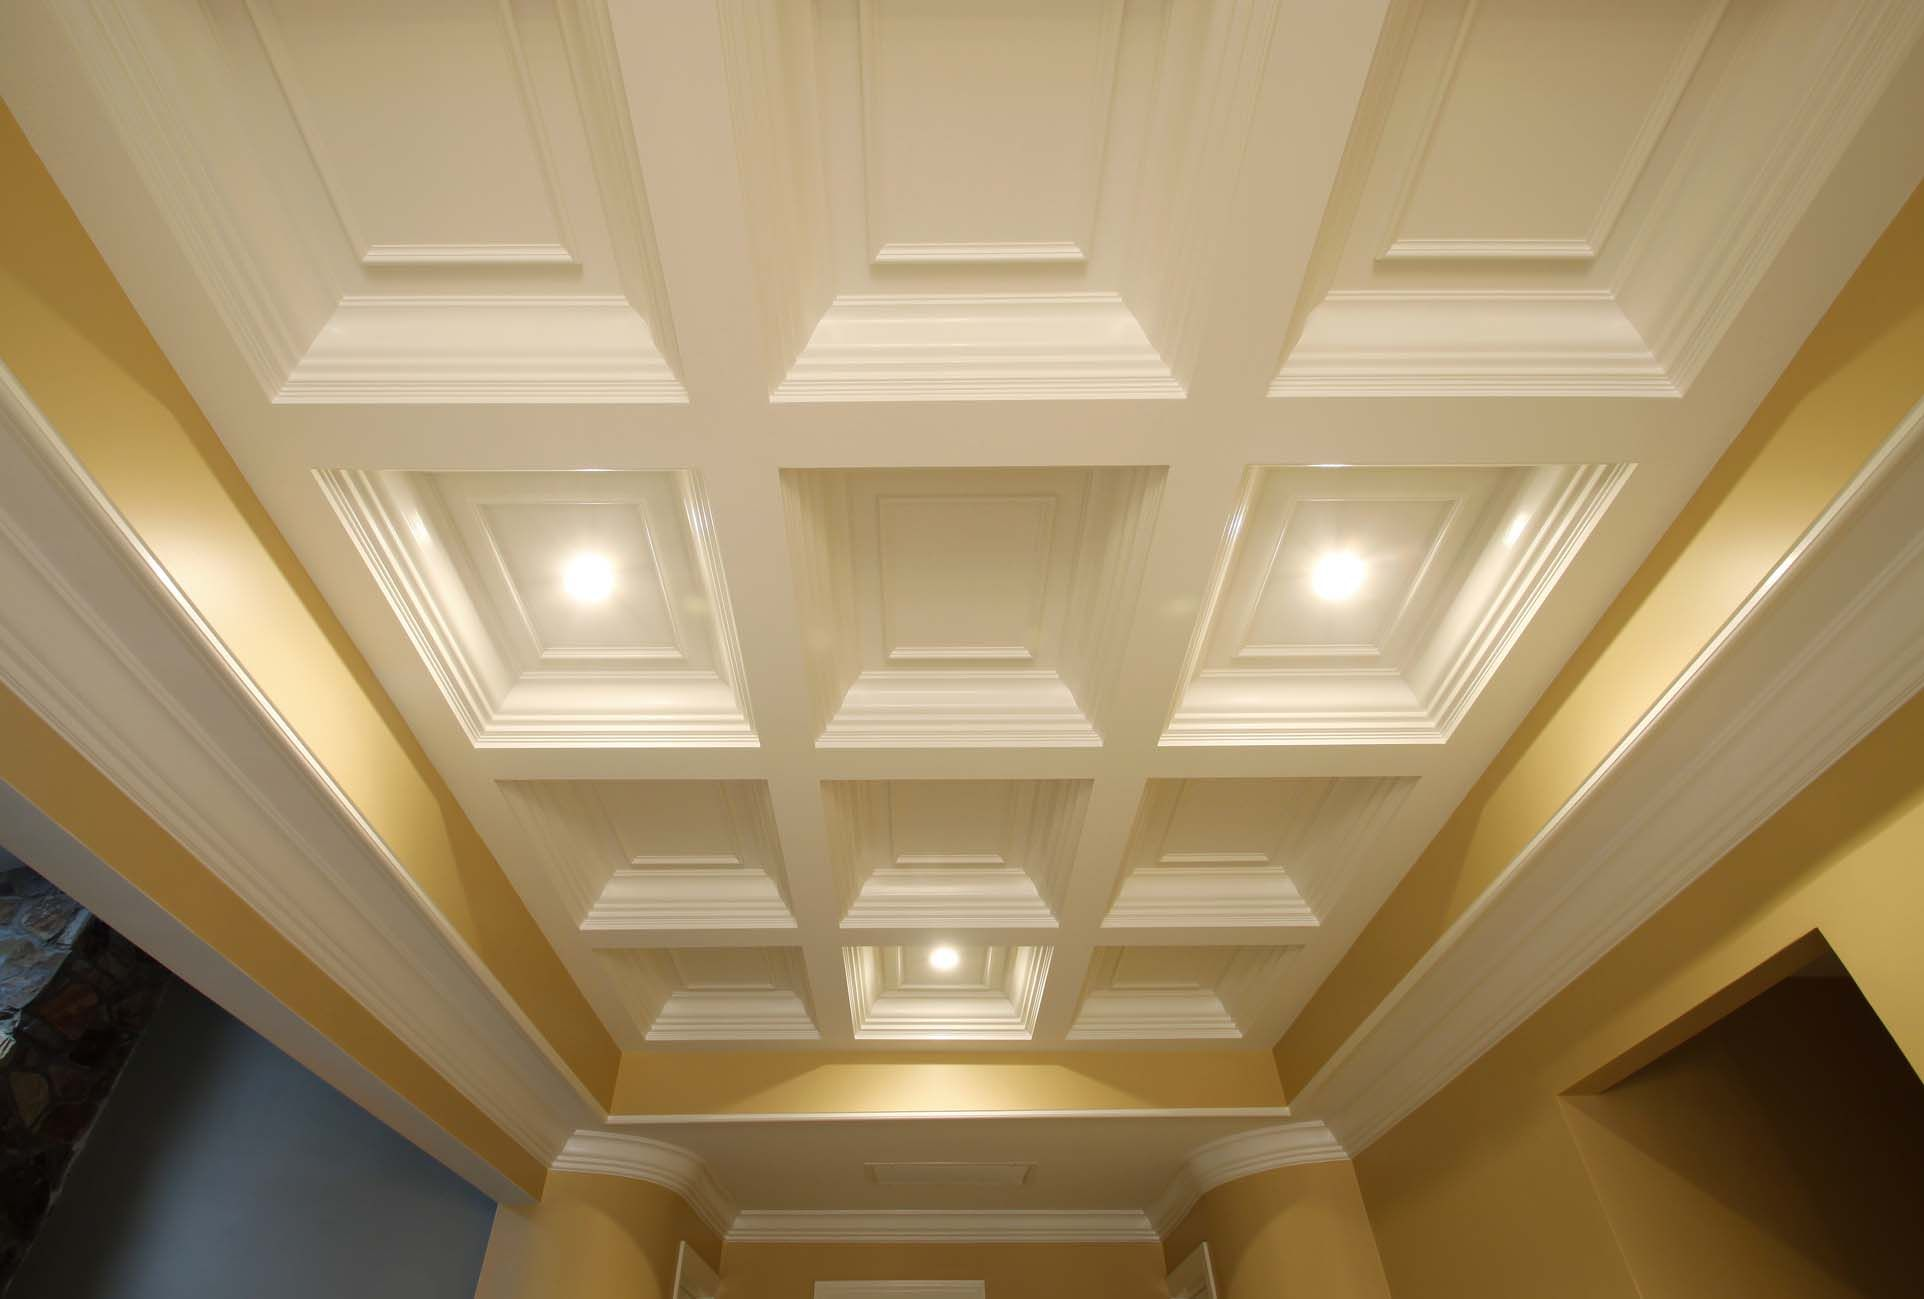 Coffered ceiling pictures or coffered ceiling designs with color white and yellow